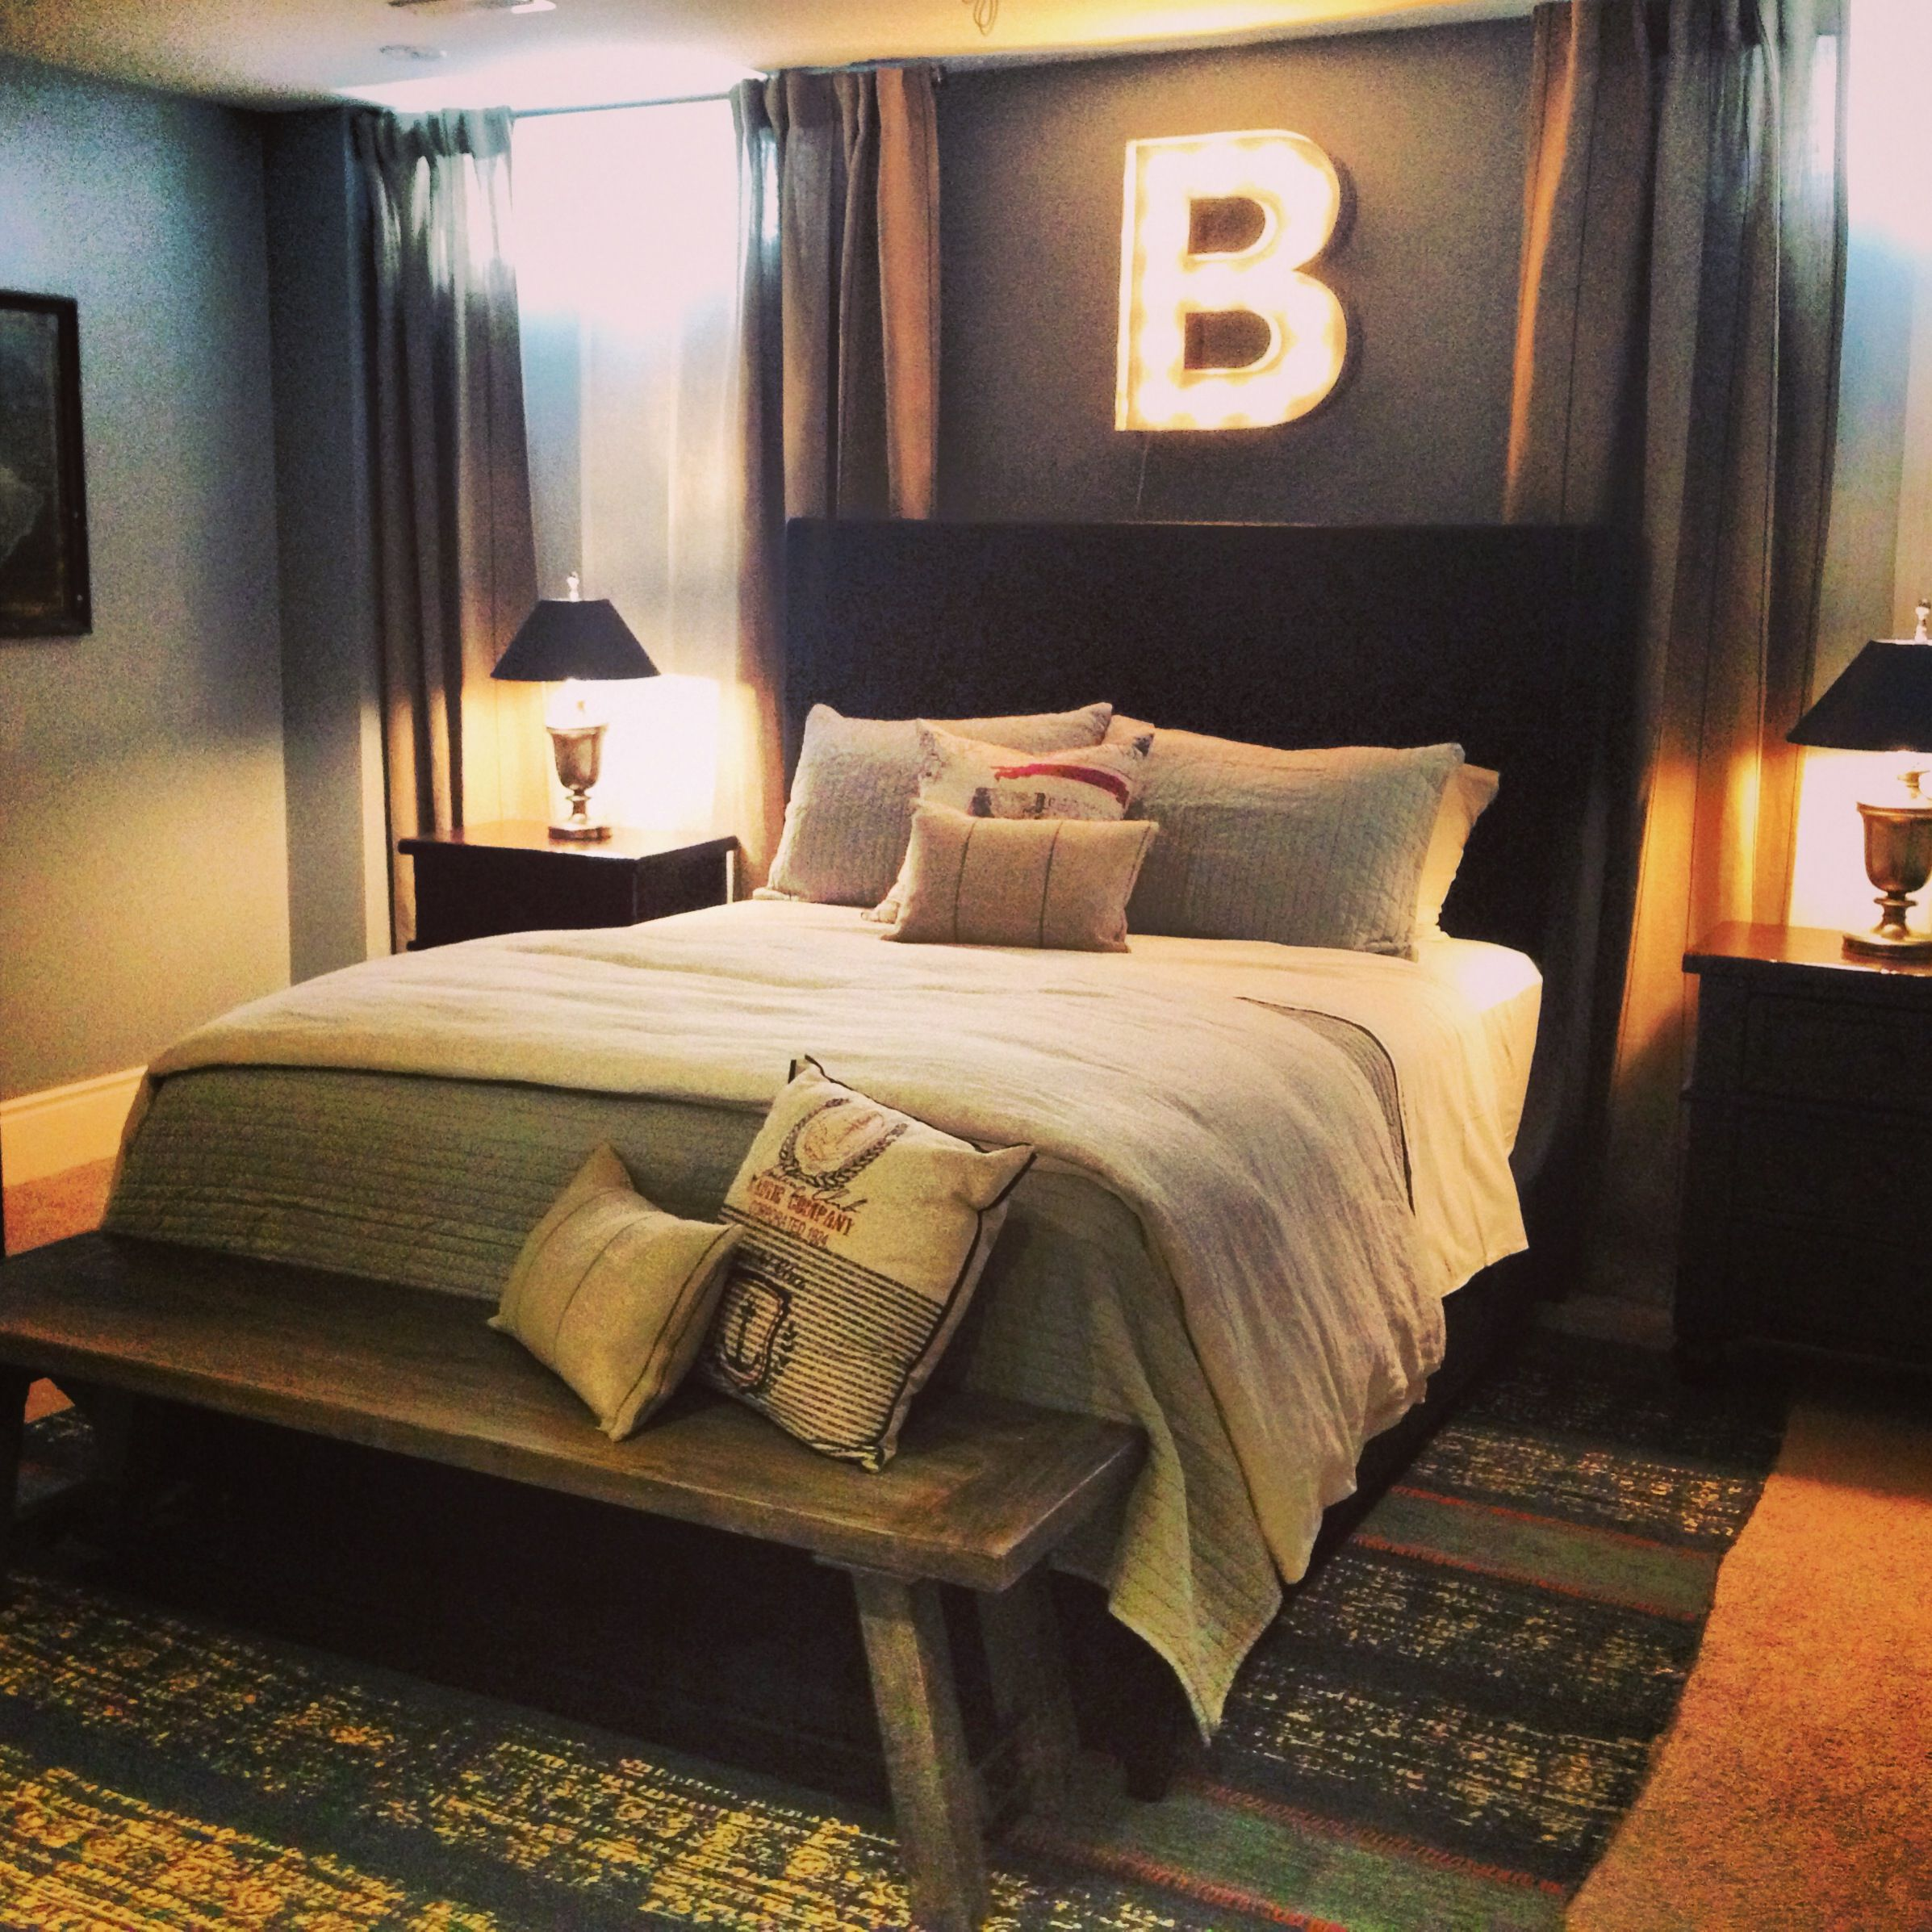 Basement bedroom for a 15 year old boy:)   For the Home ... on Teenager Basement Bedroom  id=72859